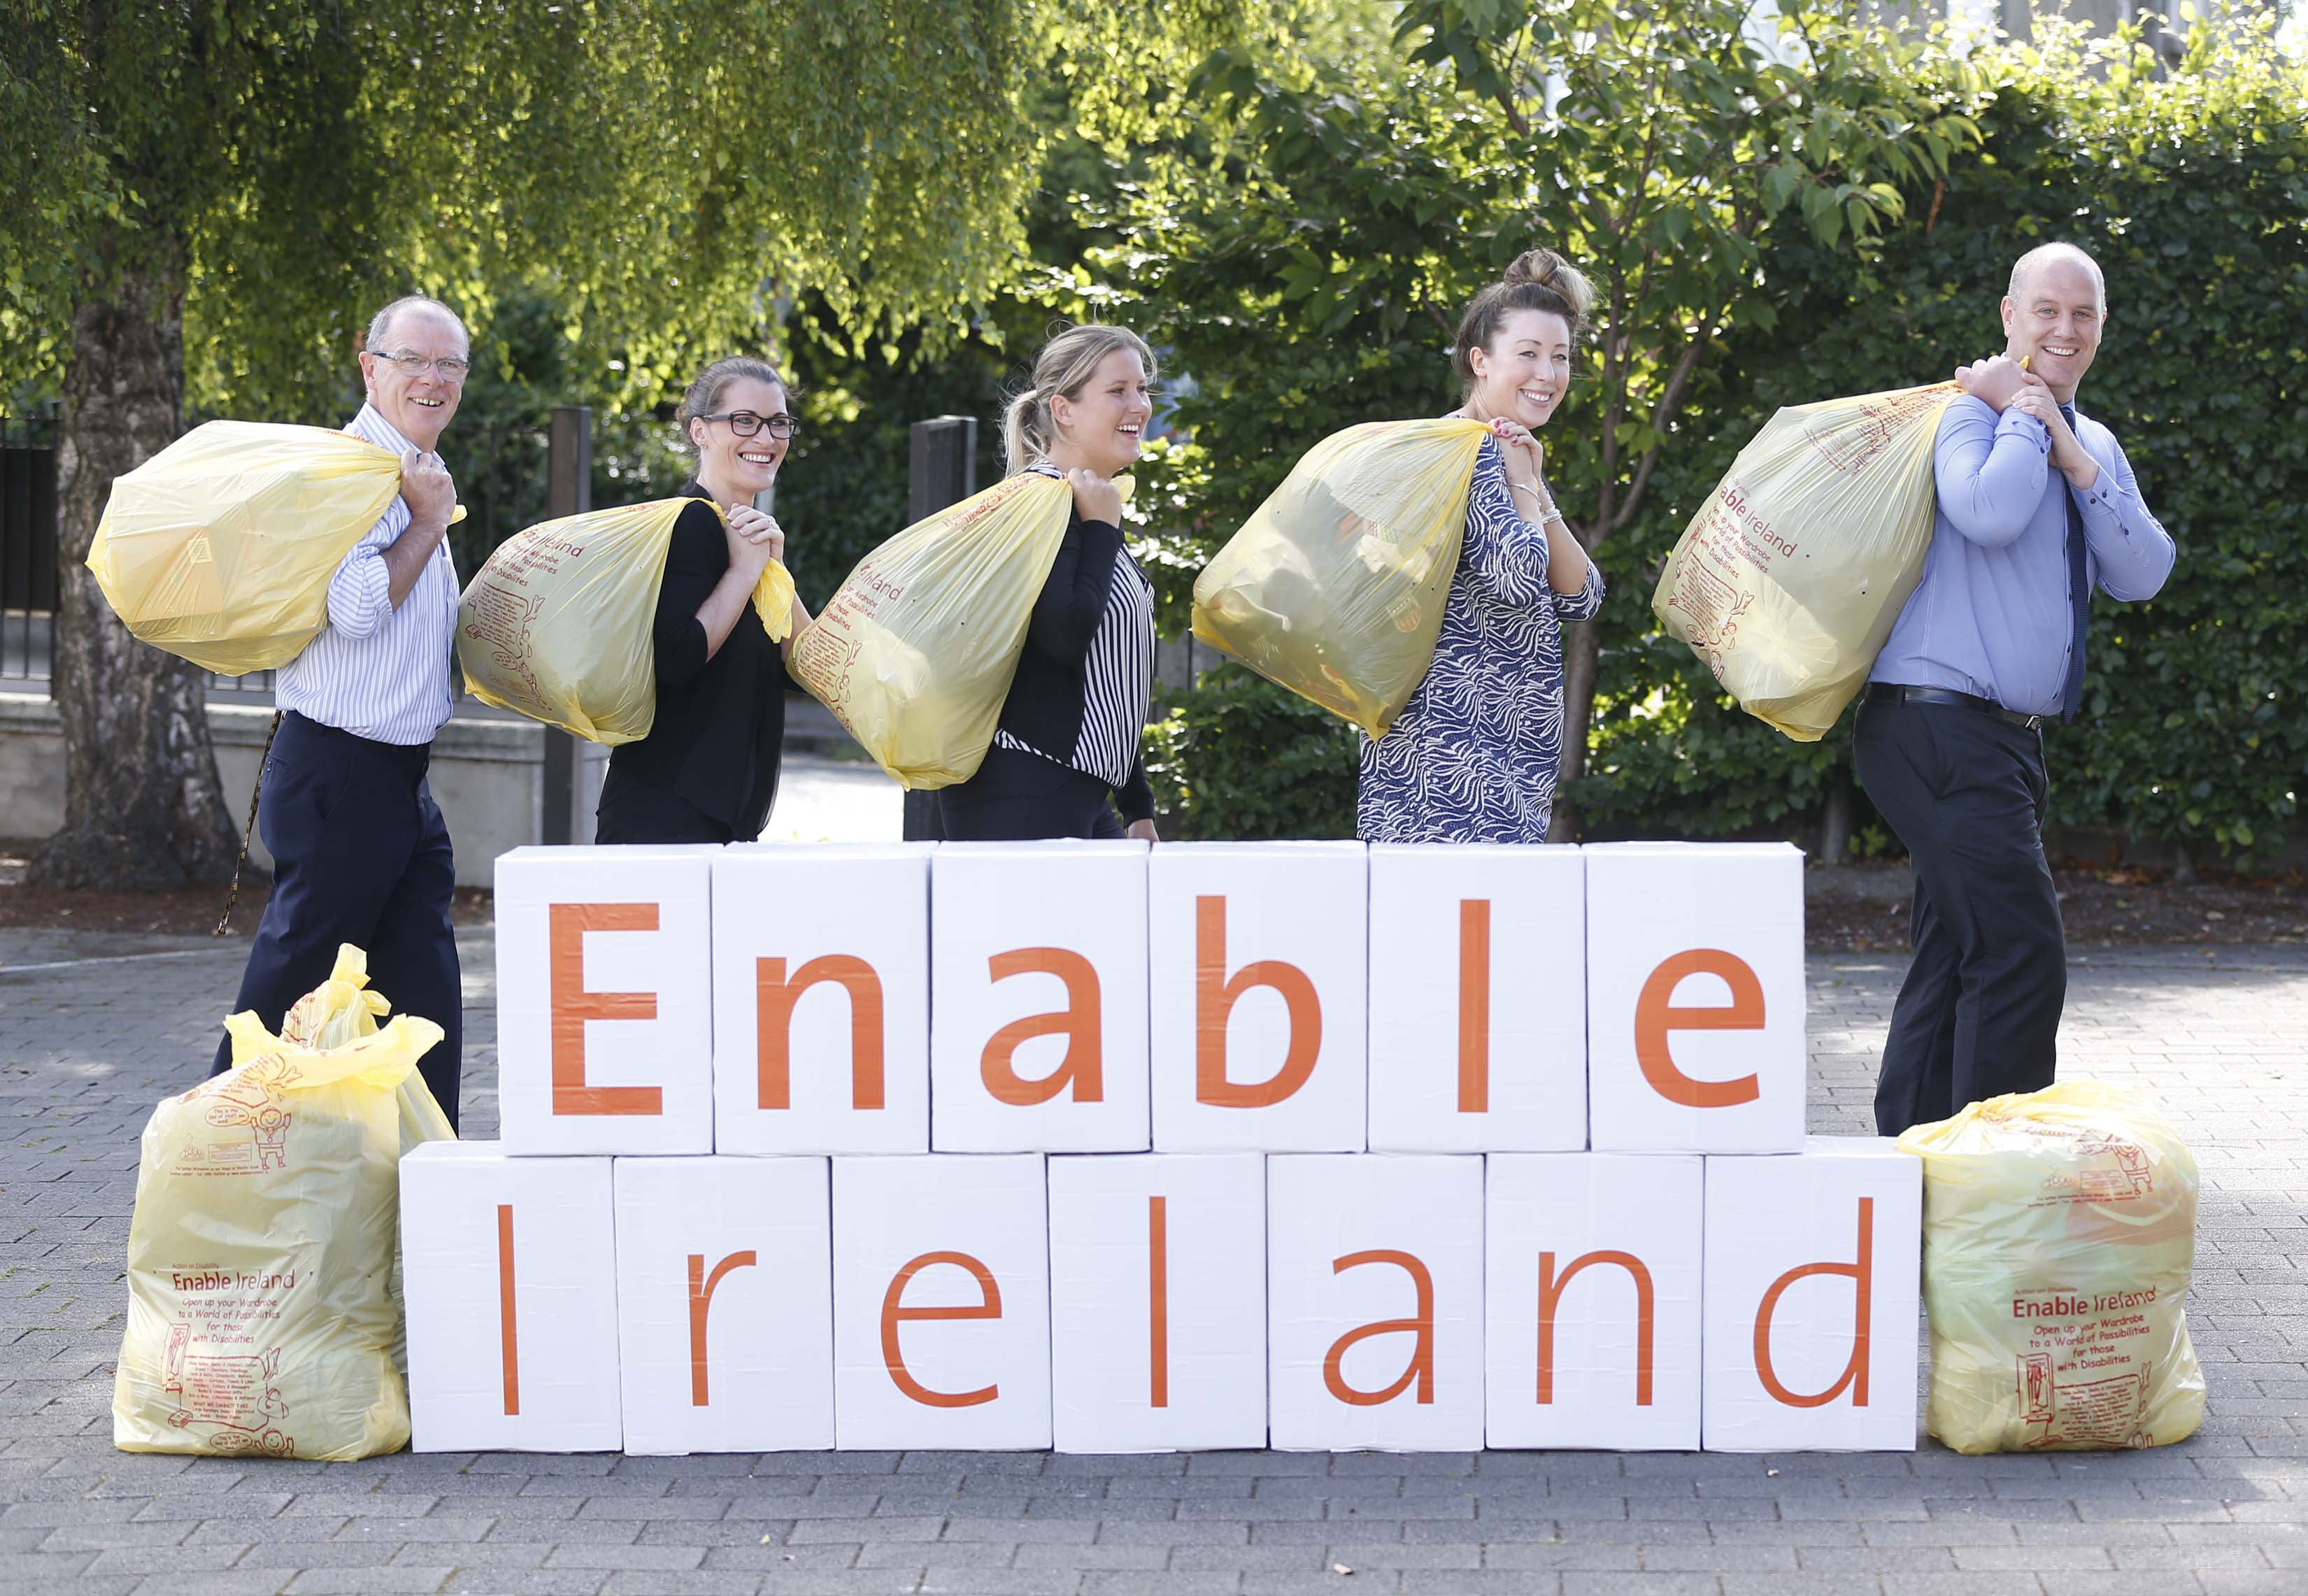 Five inidivduals in office attire standing behind and Enable Ireland sign carrying yellow Enable Ireland clothing bags over their shoulders